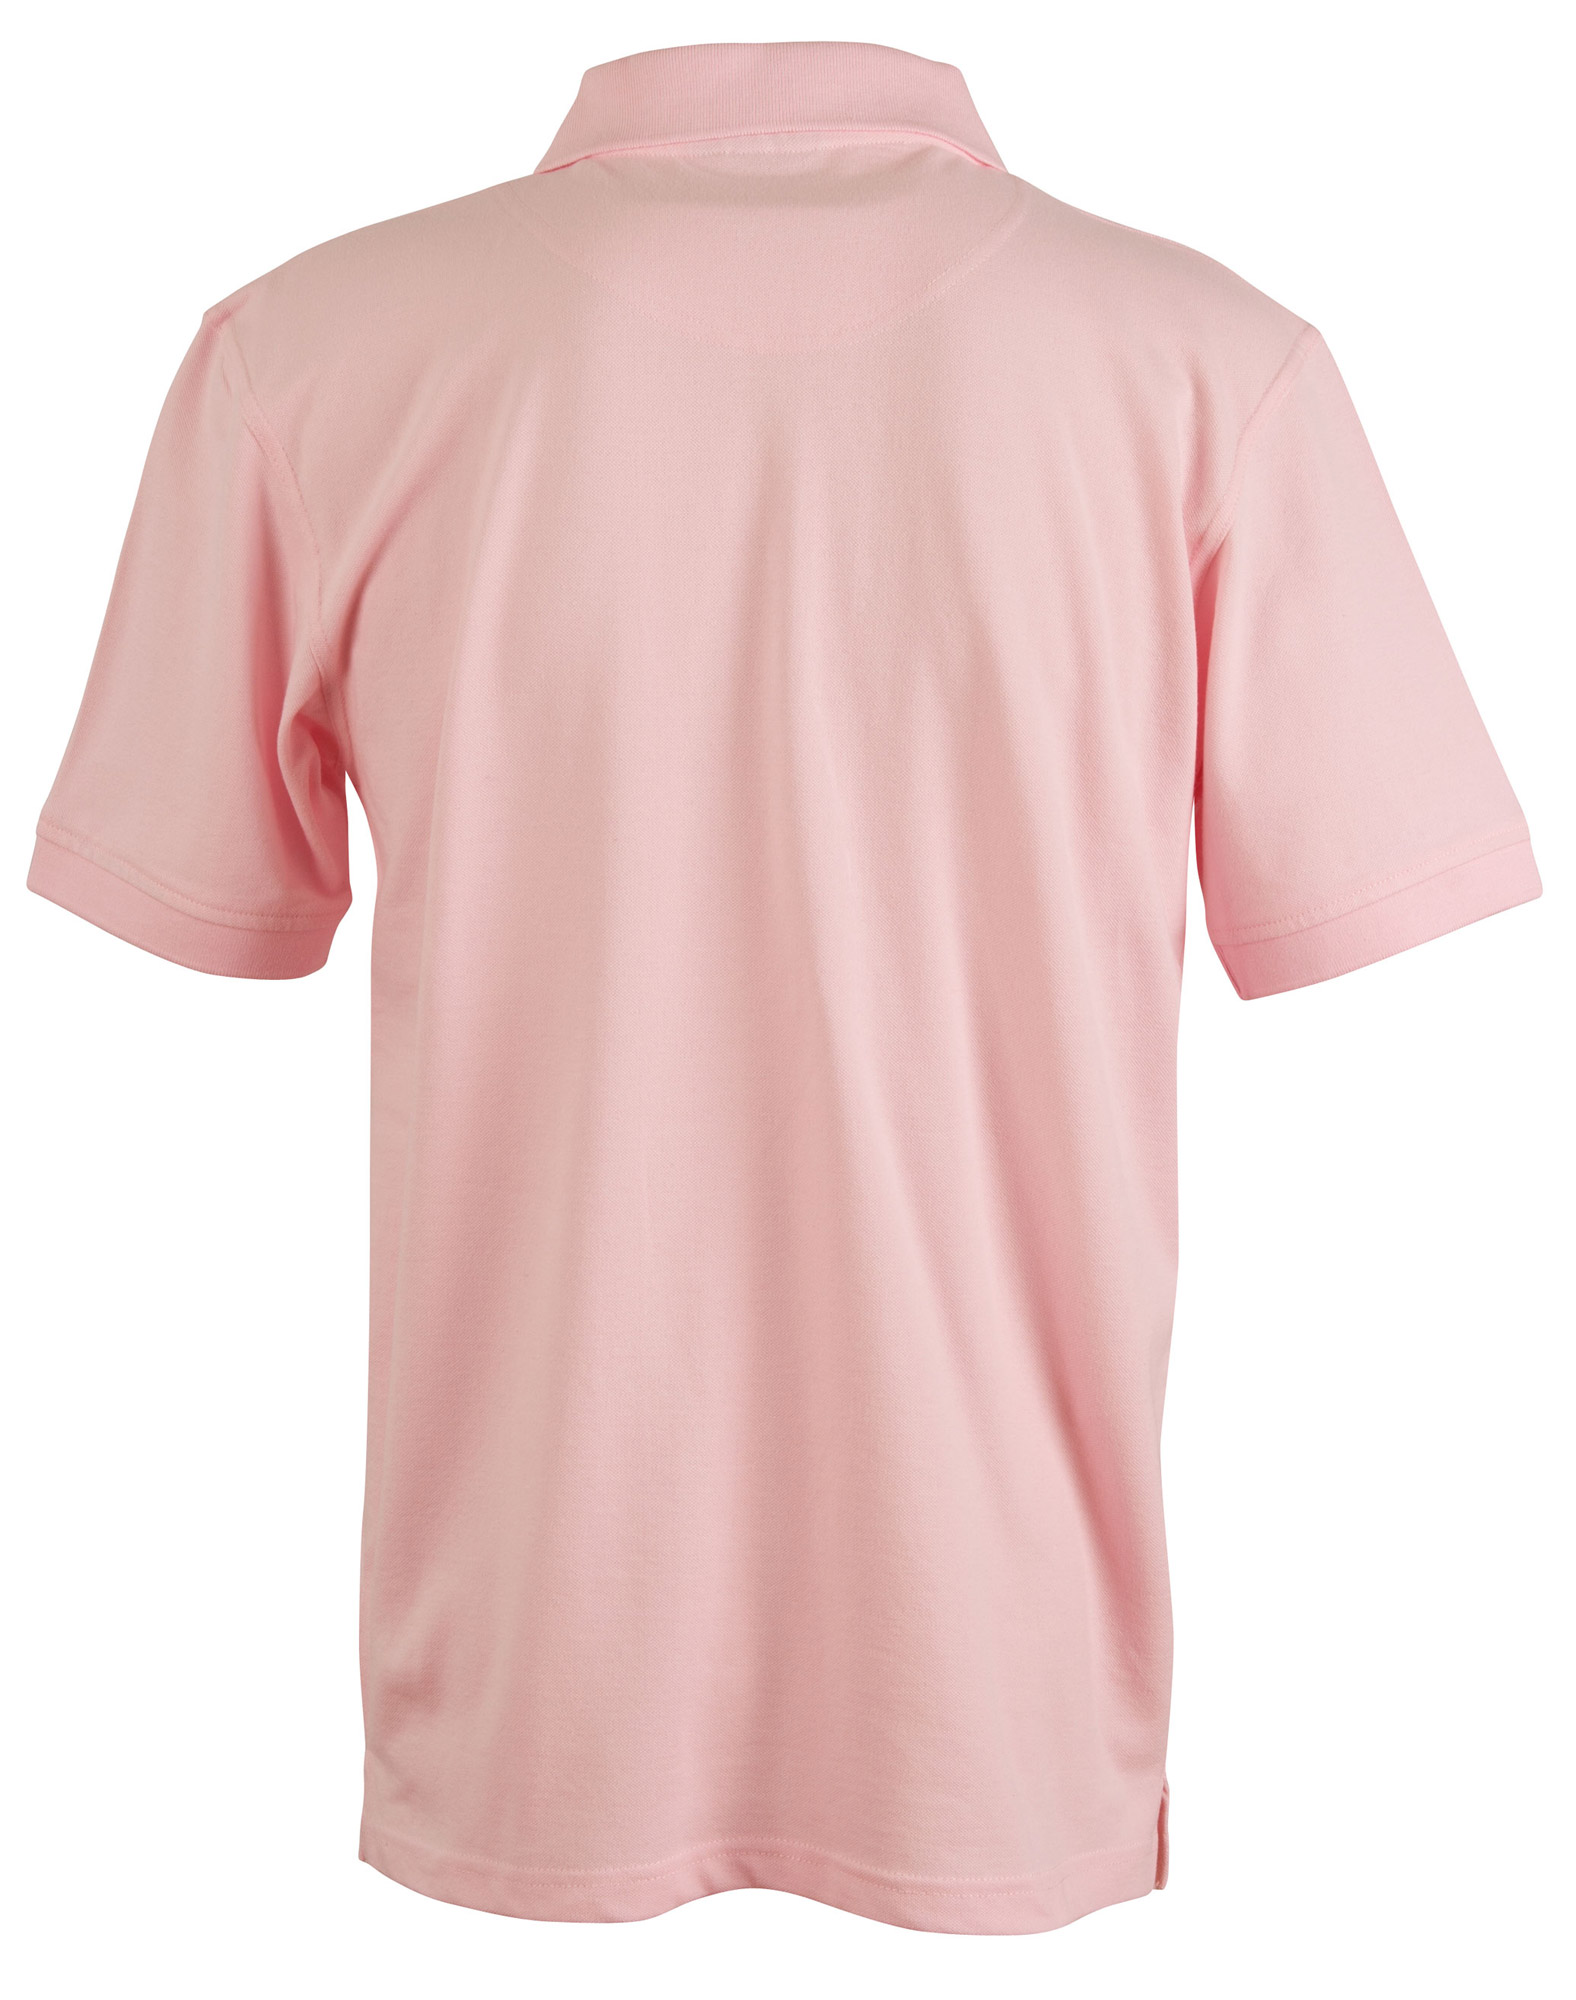 https://s3-ap-southeast-1.amazonaws.com/ws-imgs/POLOSHIRTS/PS55_Pink_Back_l.jpg